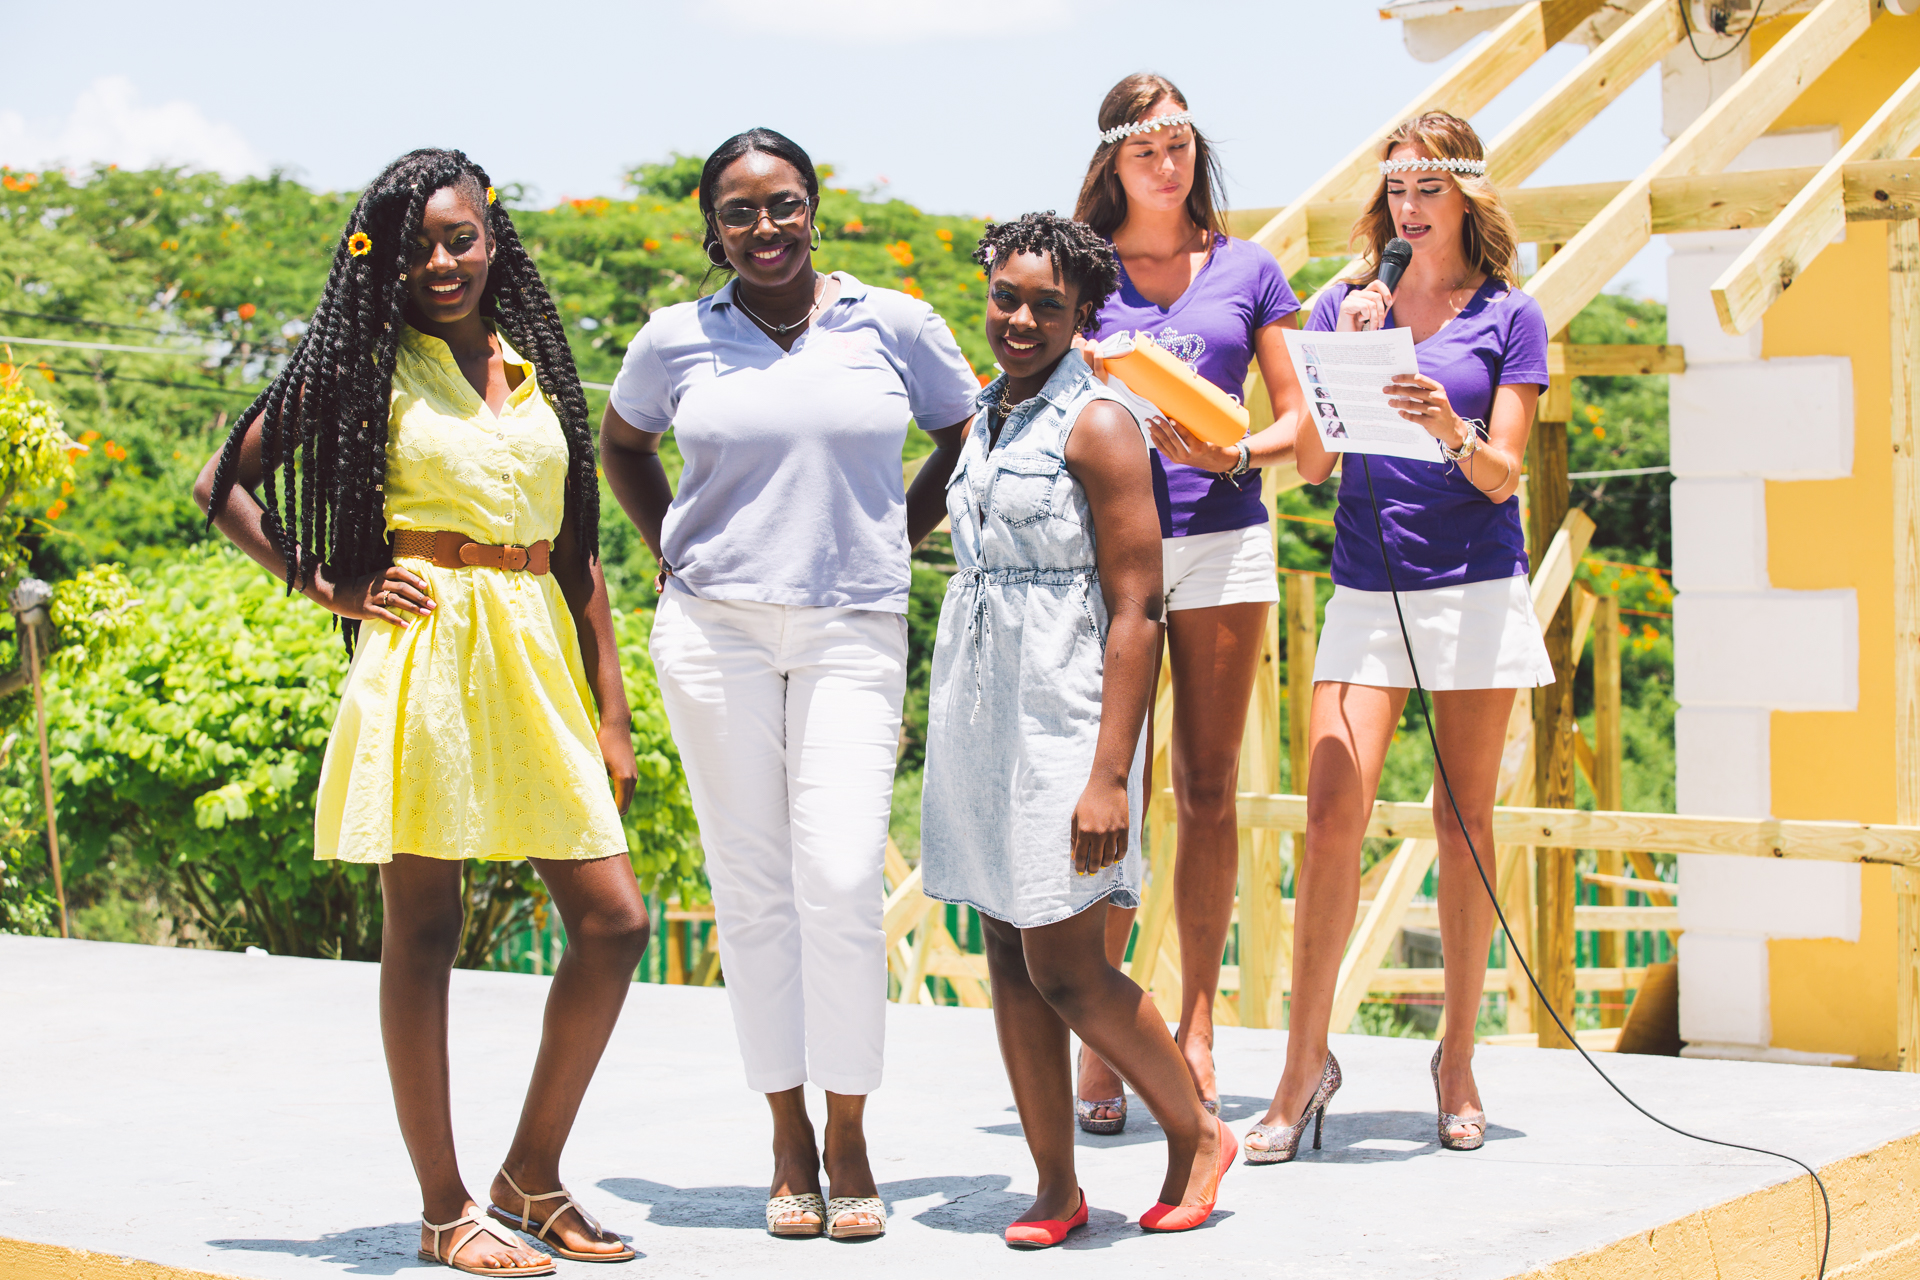 pageant of hope bahamas 2016-179.jpg